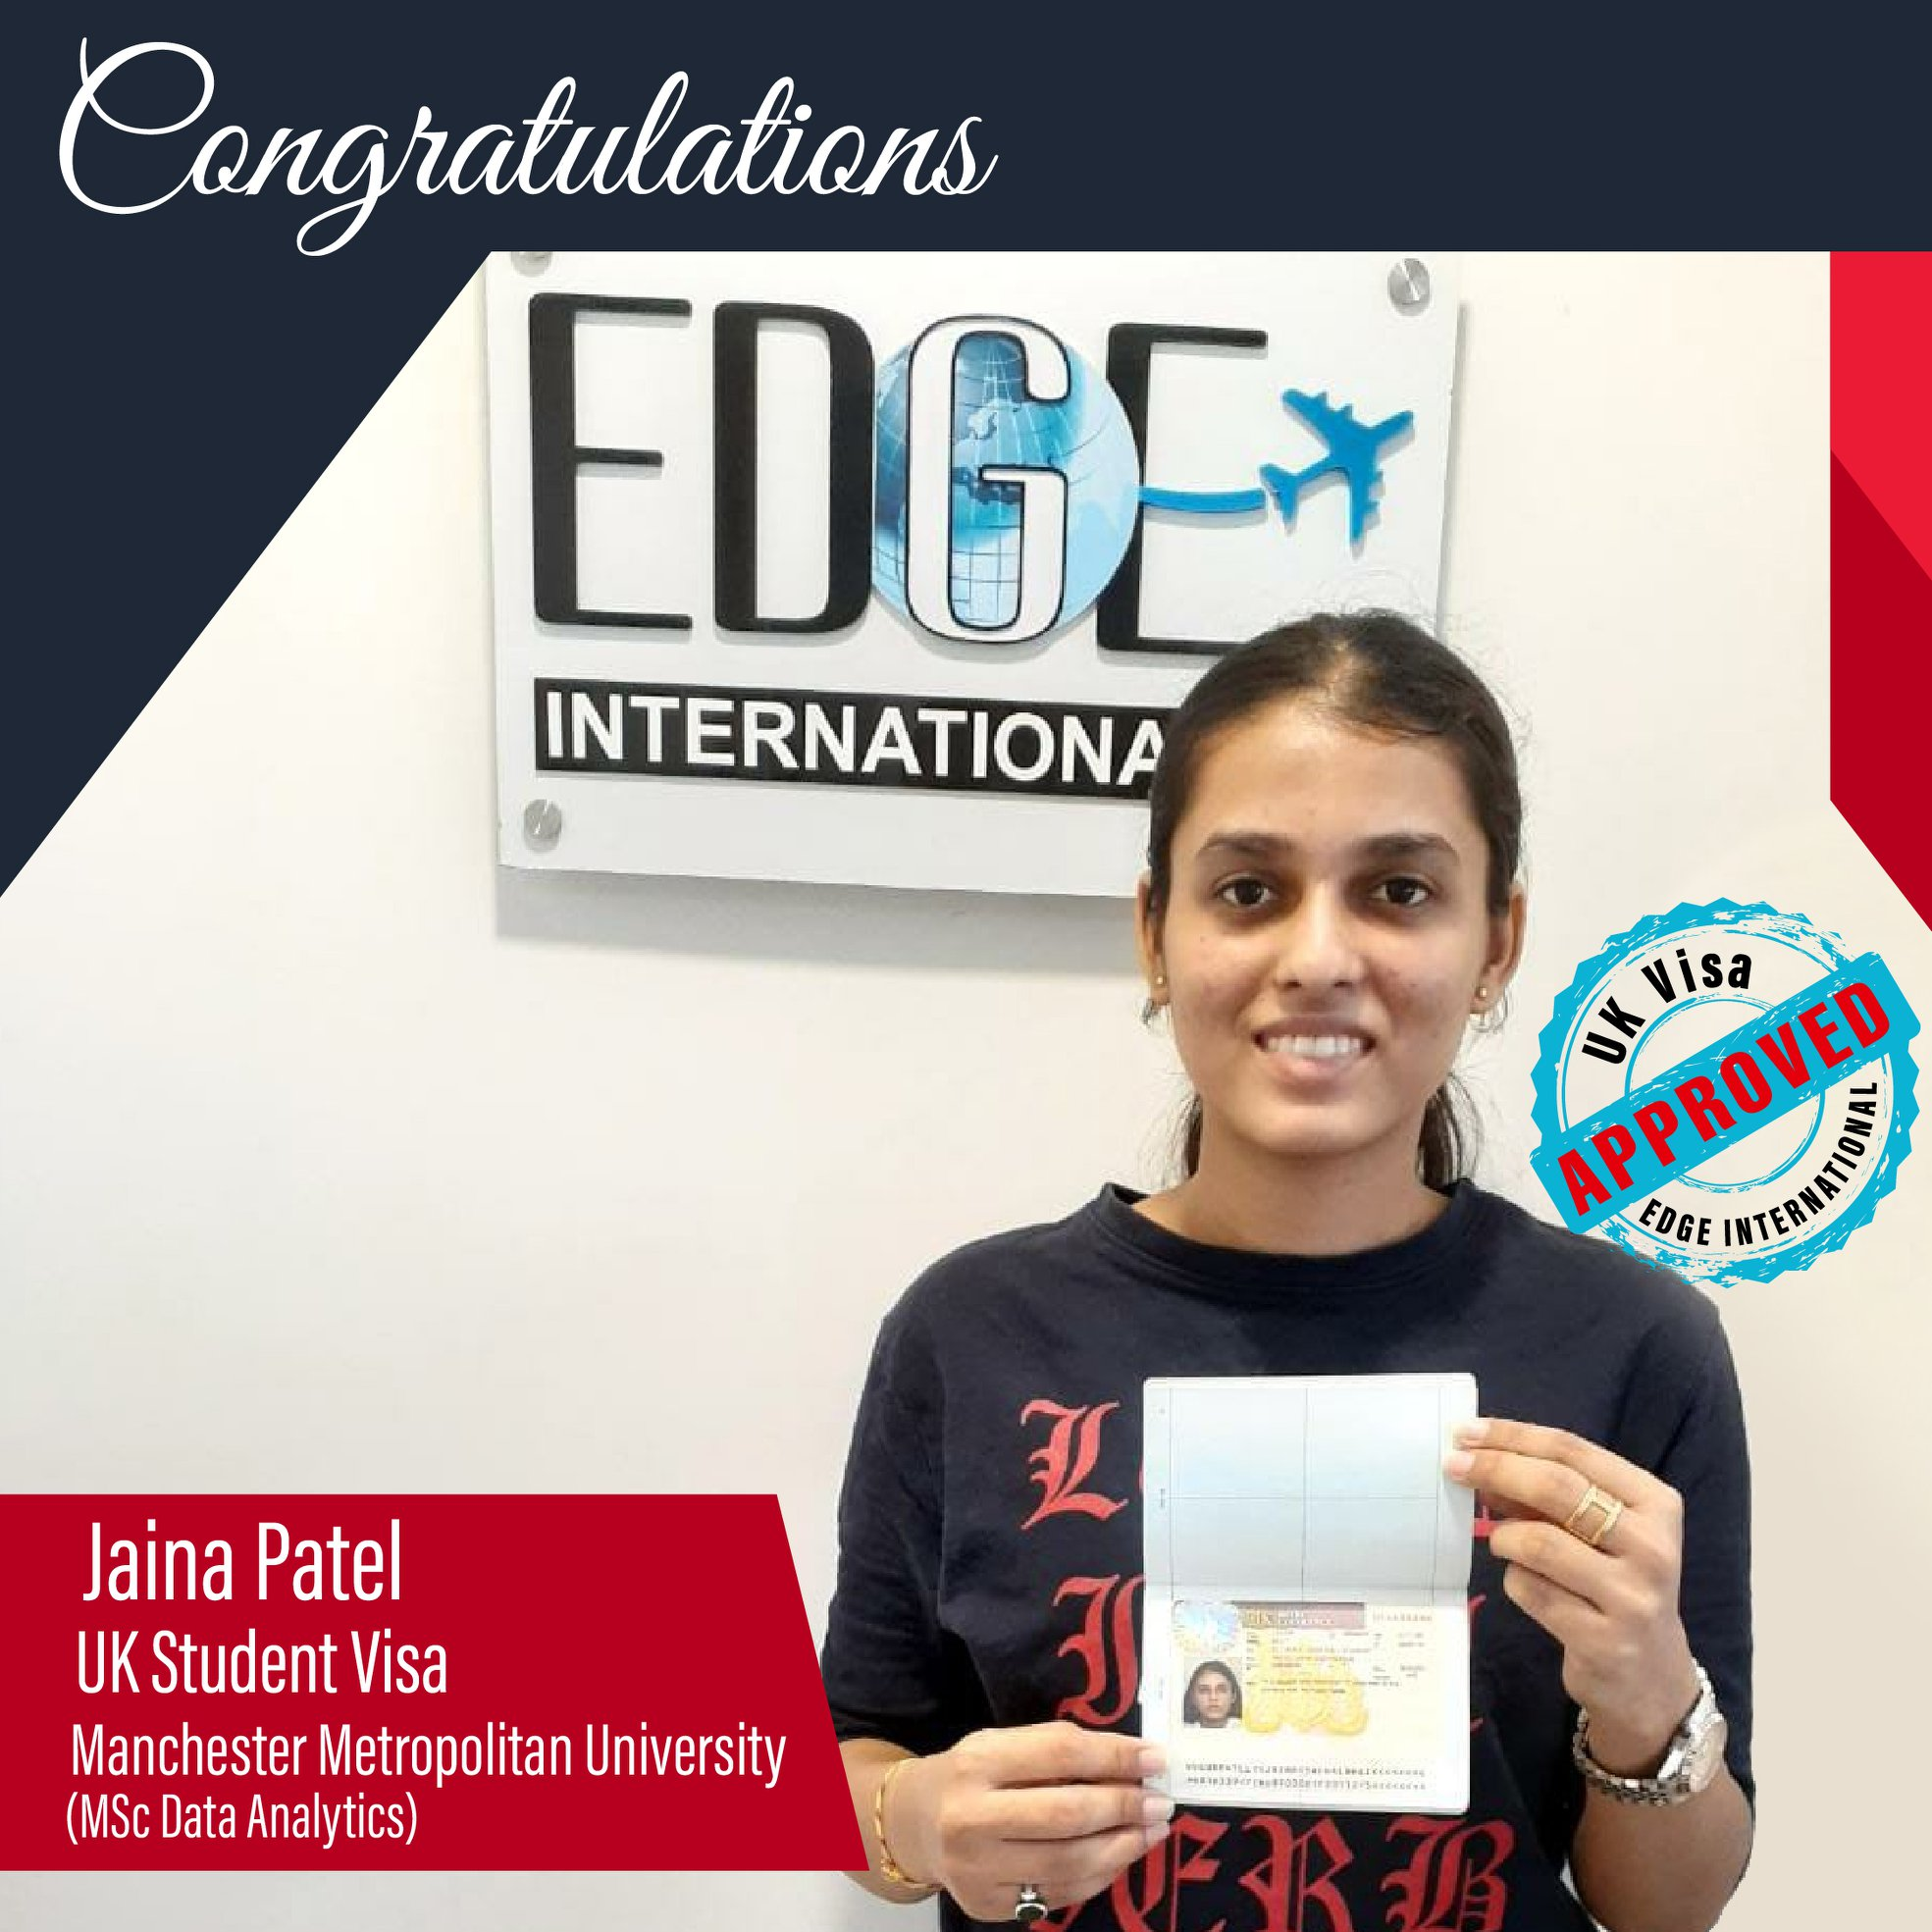 Congratulations 𝗝𝗮𝗶𝗻𝗮 𝗣𝗮𝘁𝗲𝗹 for Securing UKStudentVisa at